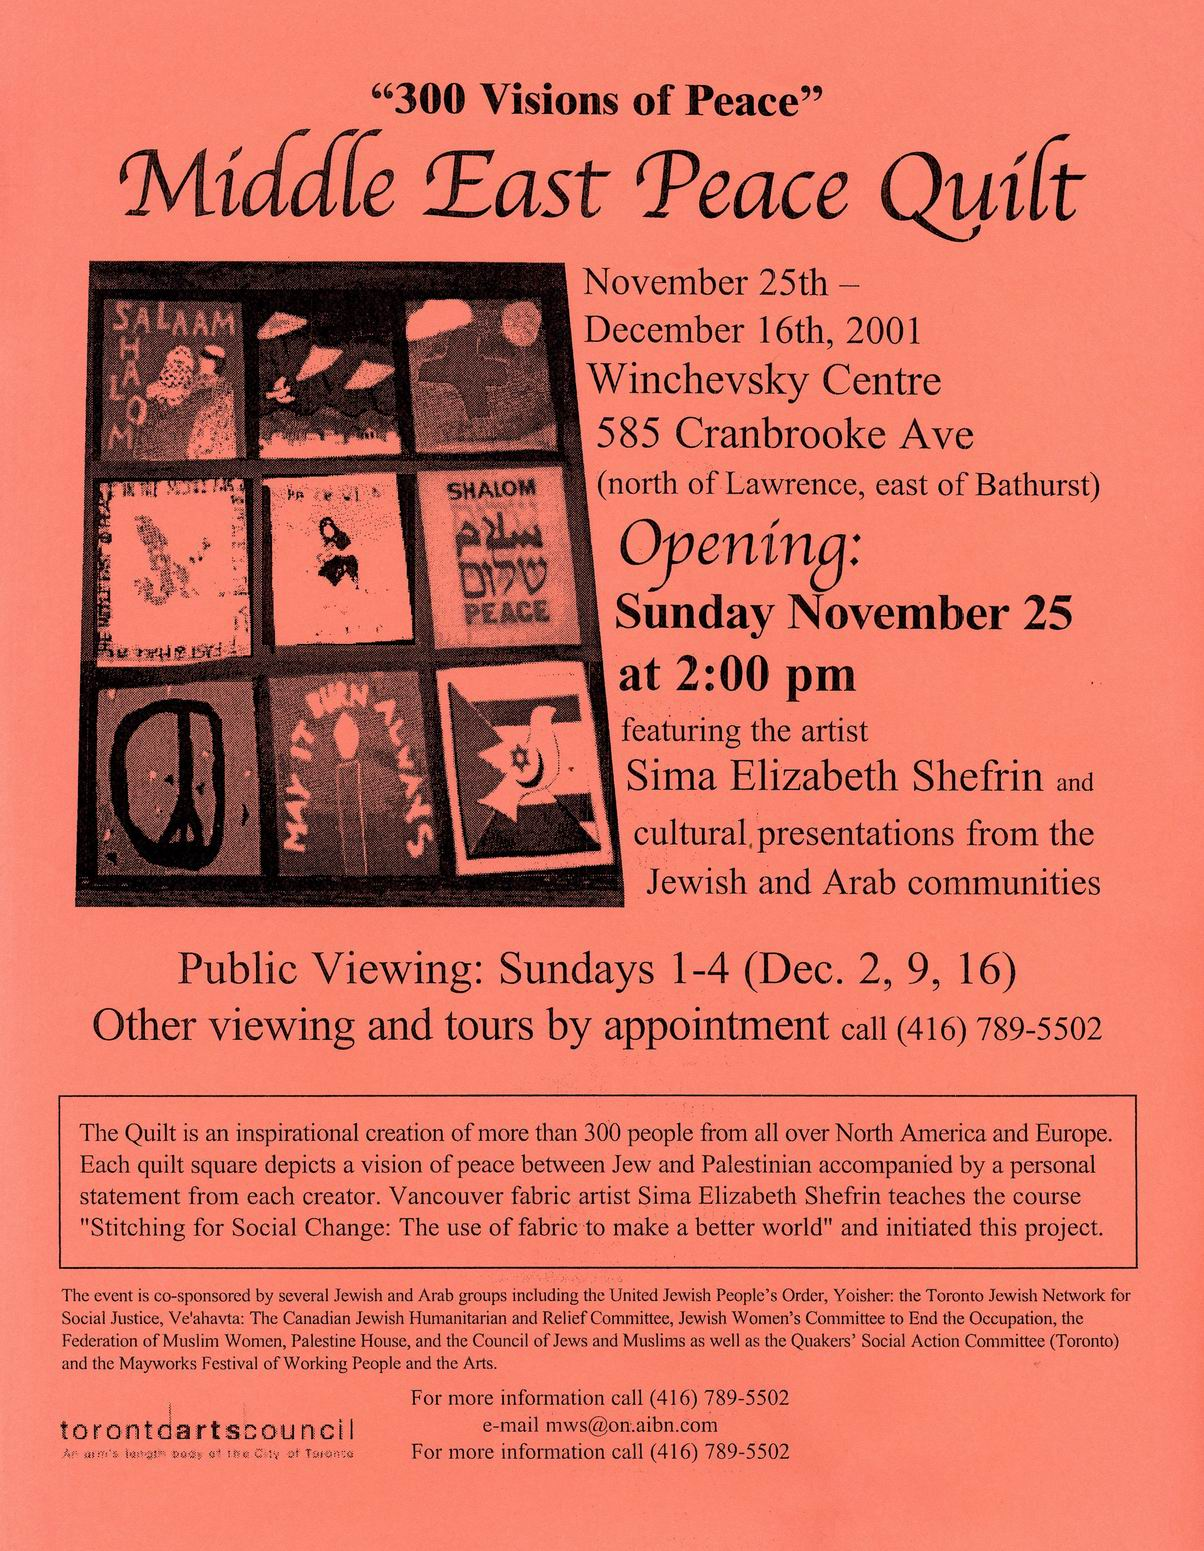 Middle East Peace Quilt 2001